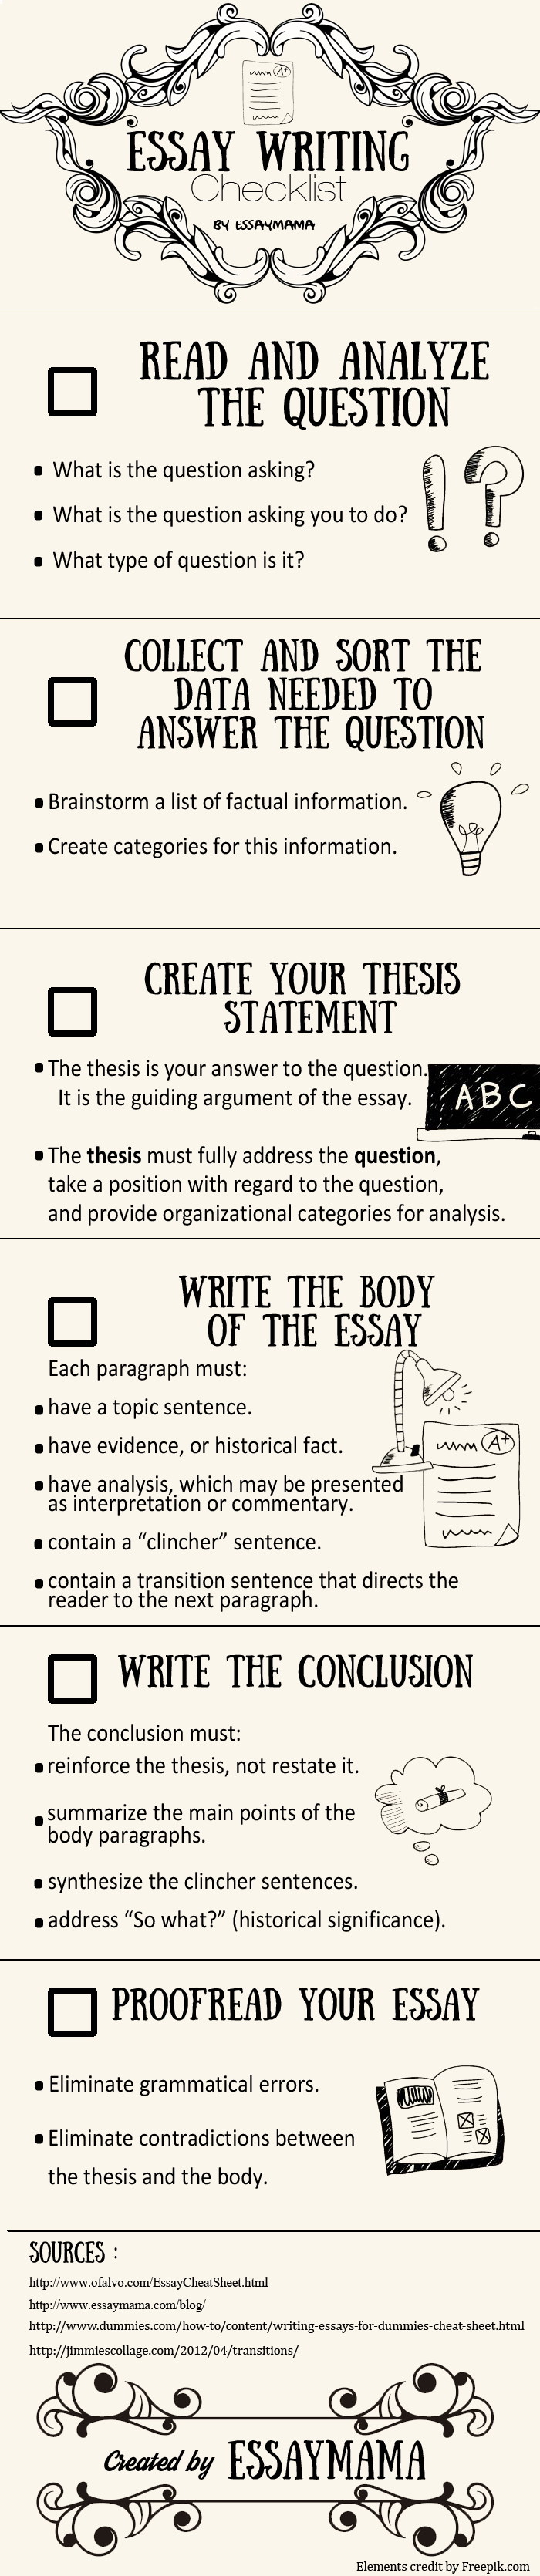 essay writing checklist for brainy students by the one of them essay writing checklist for brainy students by the one of them check your essay